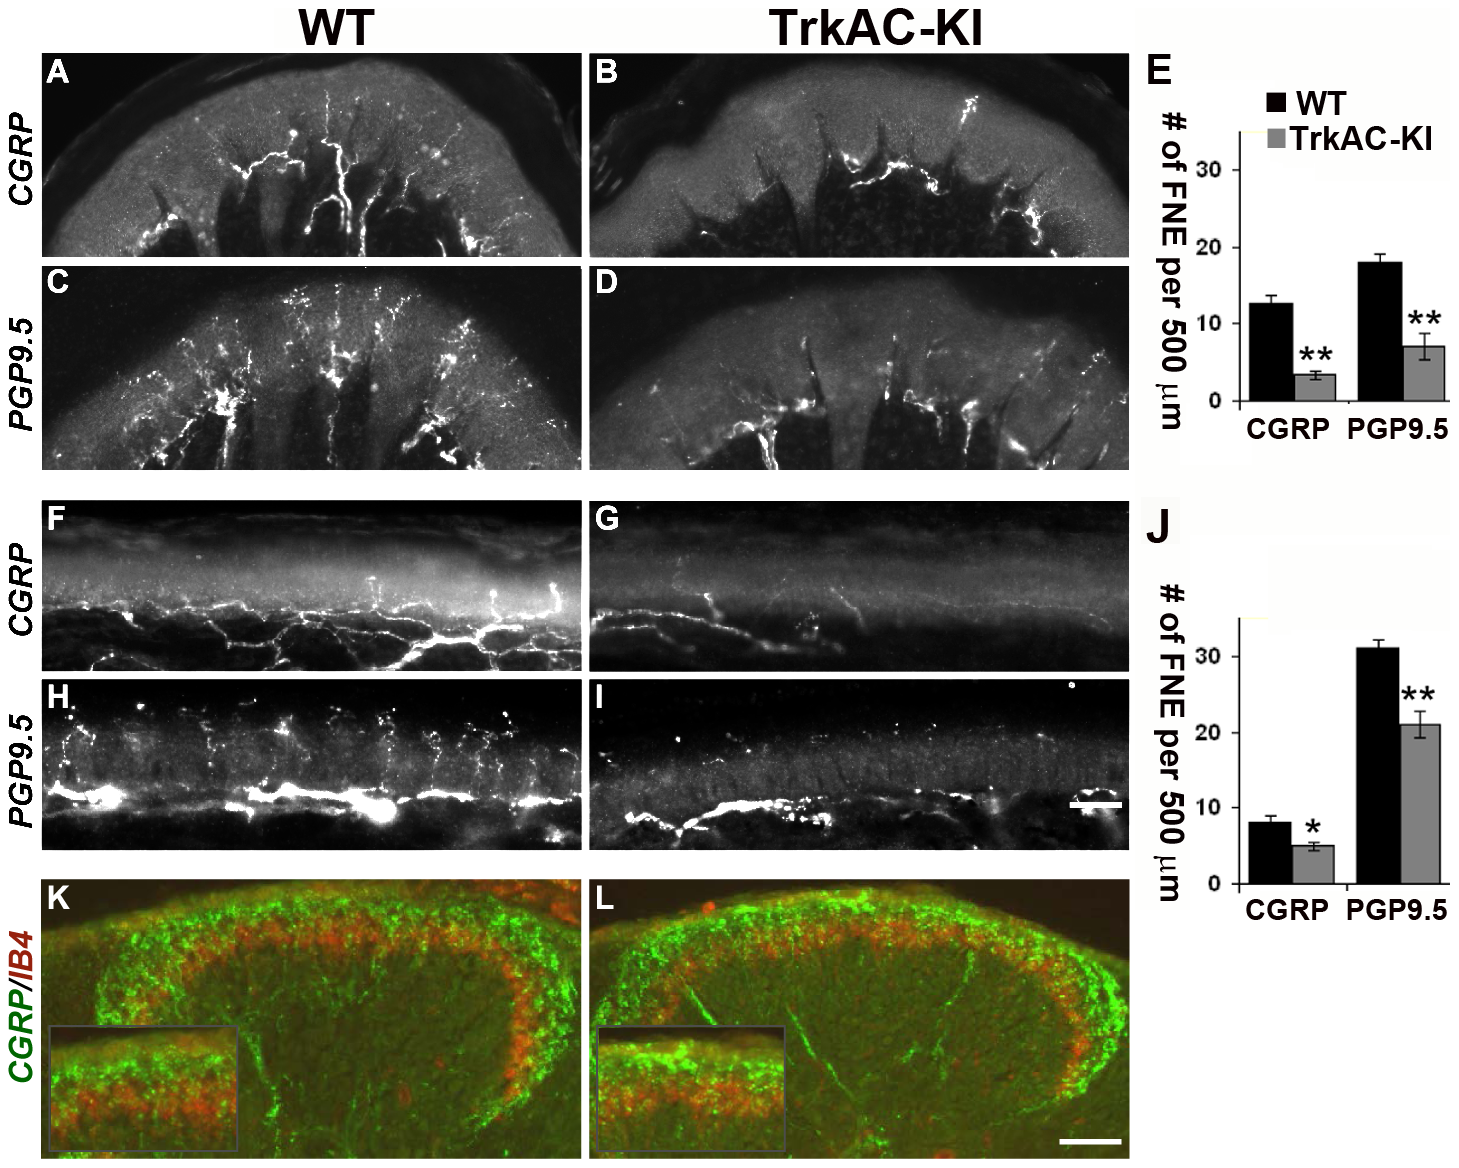 Peripheral, but not central innervation is drastically reduced in TrkAC-KI mice.